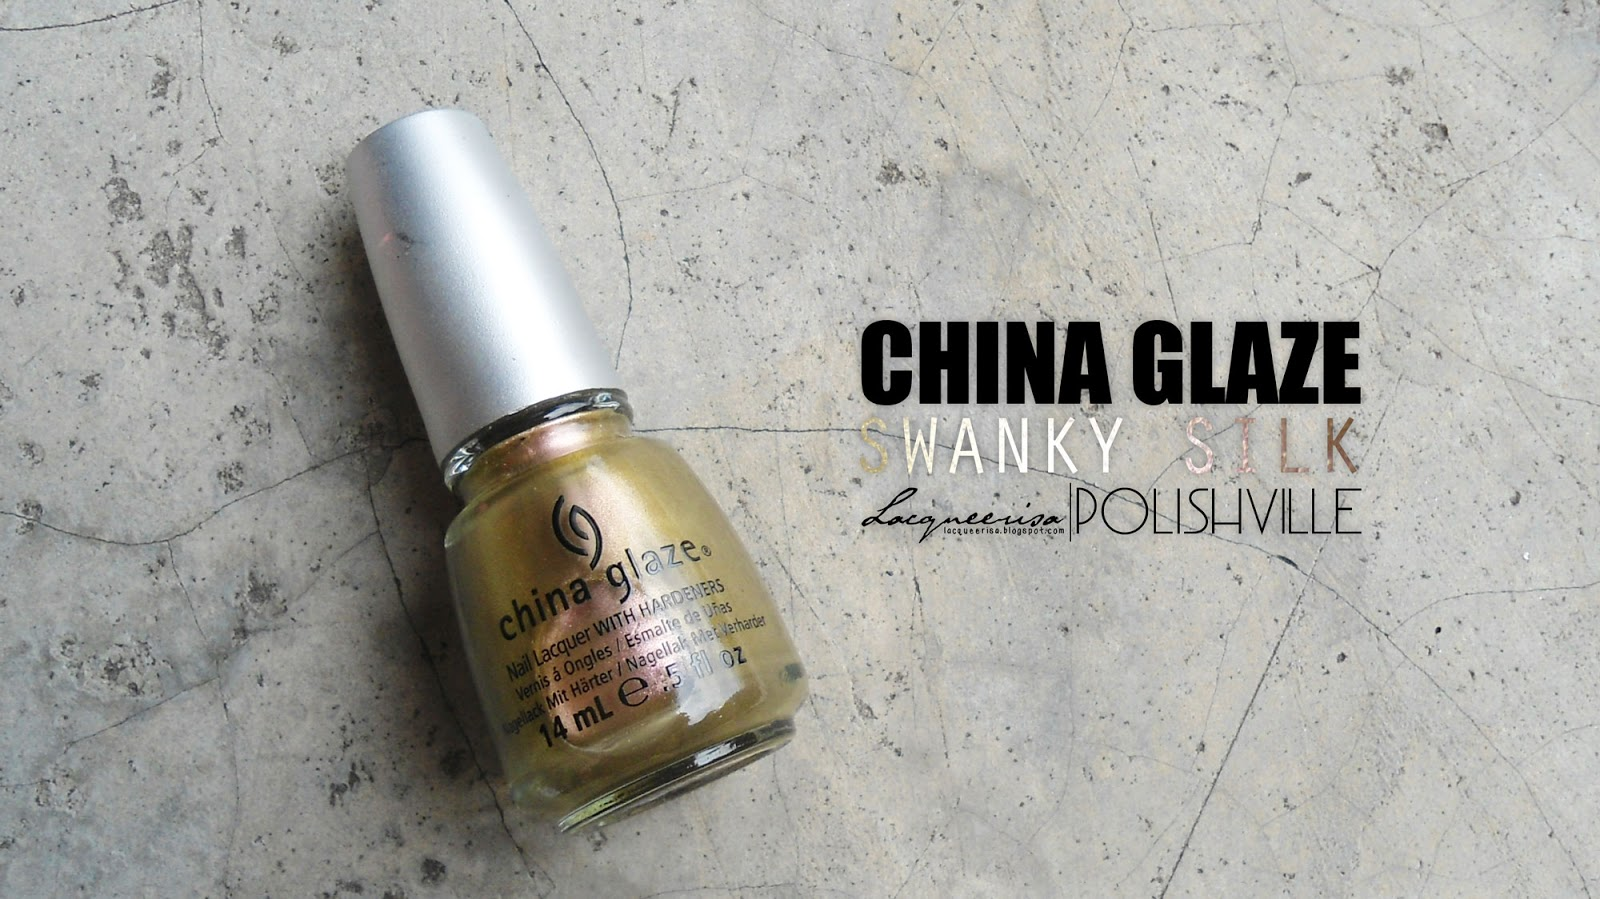 LacqueerisaXPolishville: China Glaze, Swanky Silk